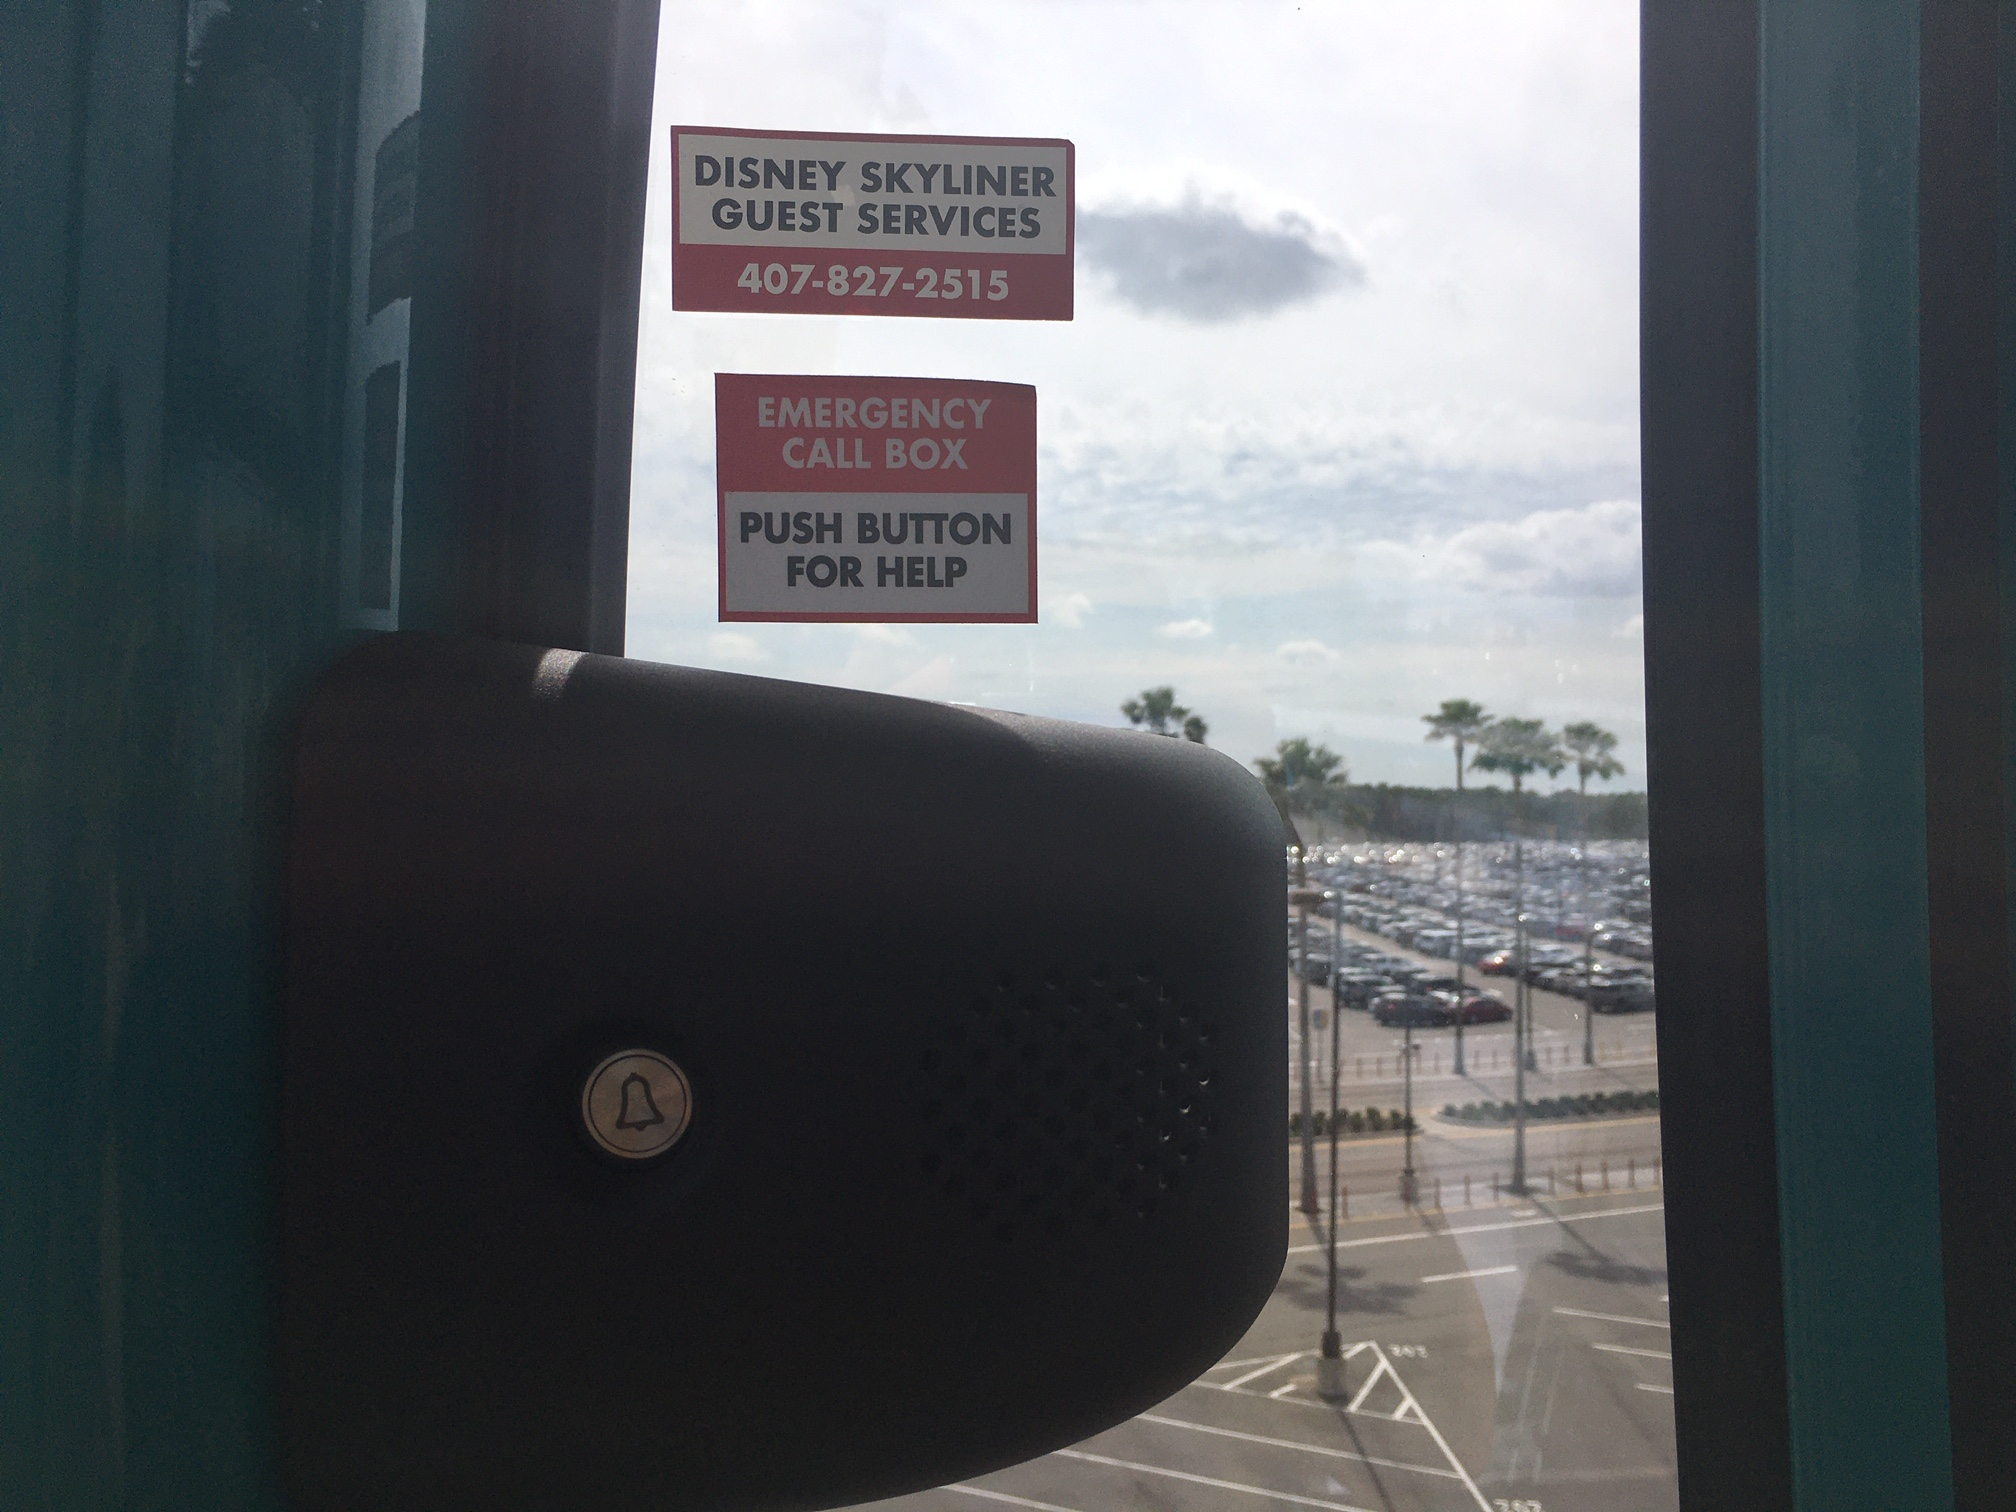 emergency phone number in all disney skyliners